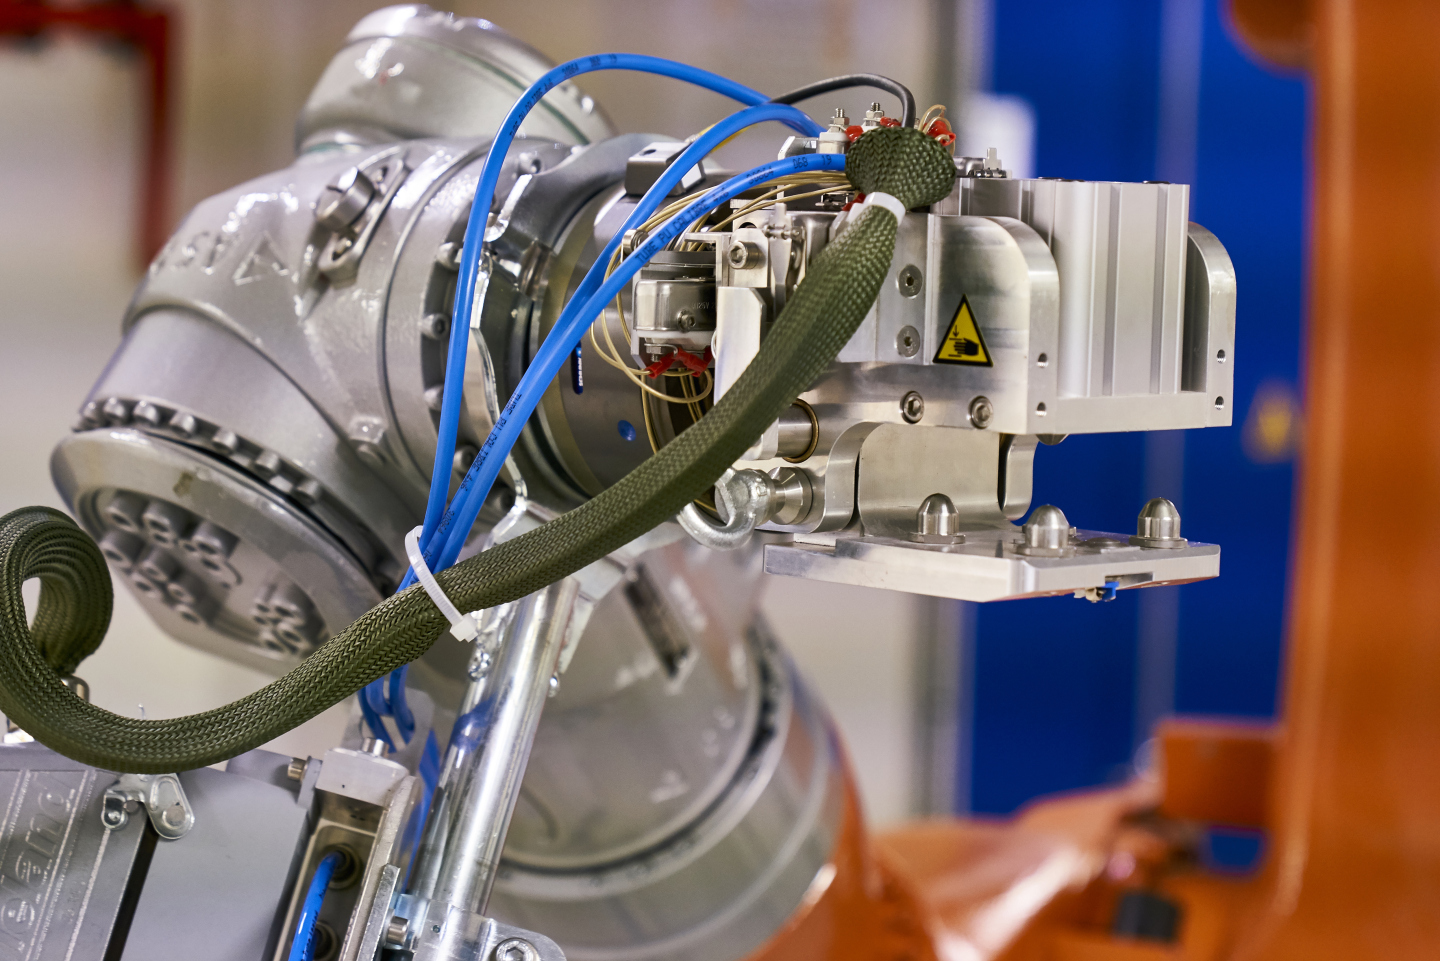 MEDICIS robot isotope production for medical research